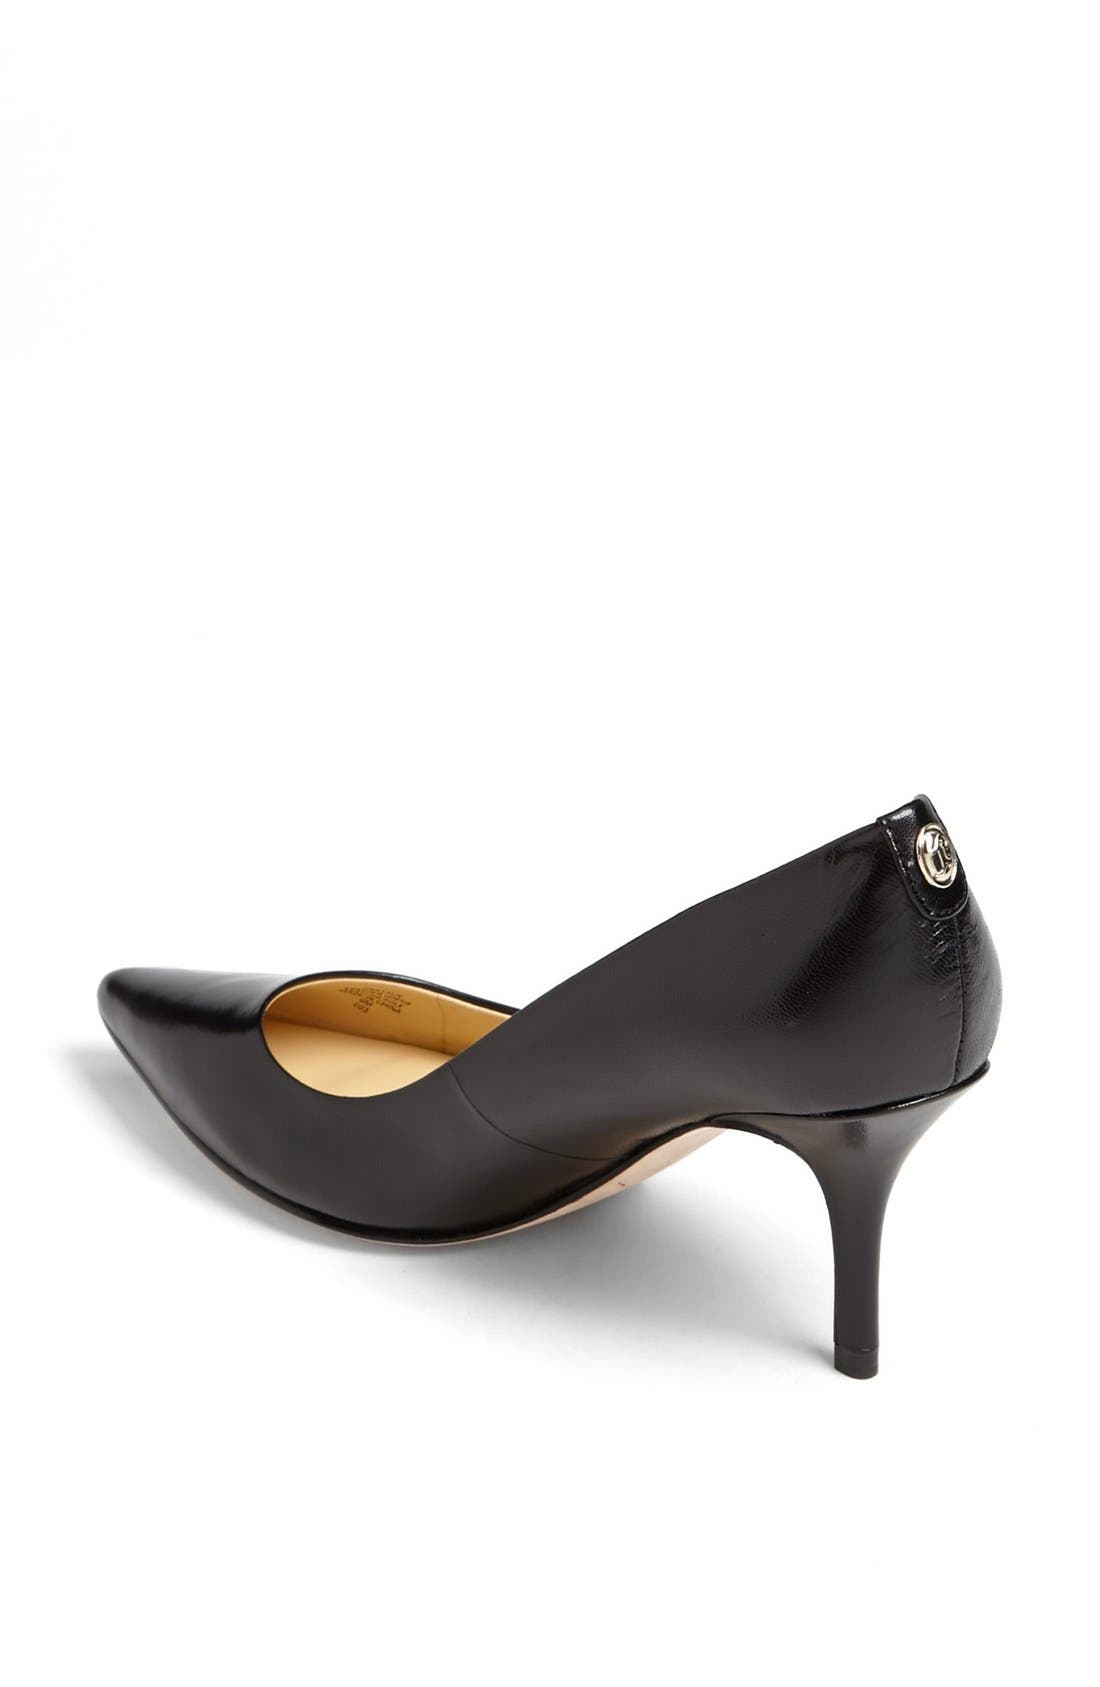 'Natalie' Pointed Toe Pump,                             Alternate thumbnail 2, color,                             Black Leather